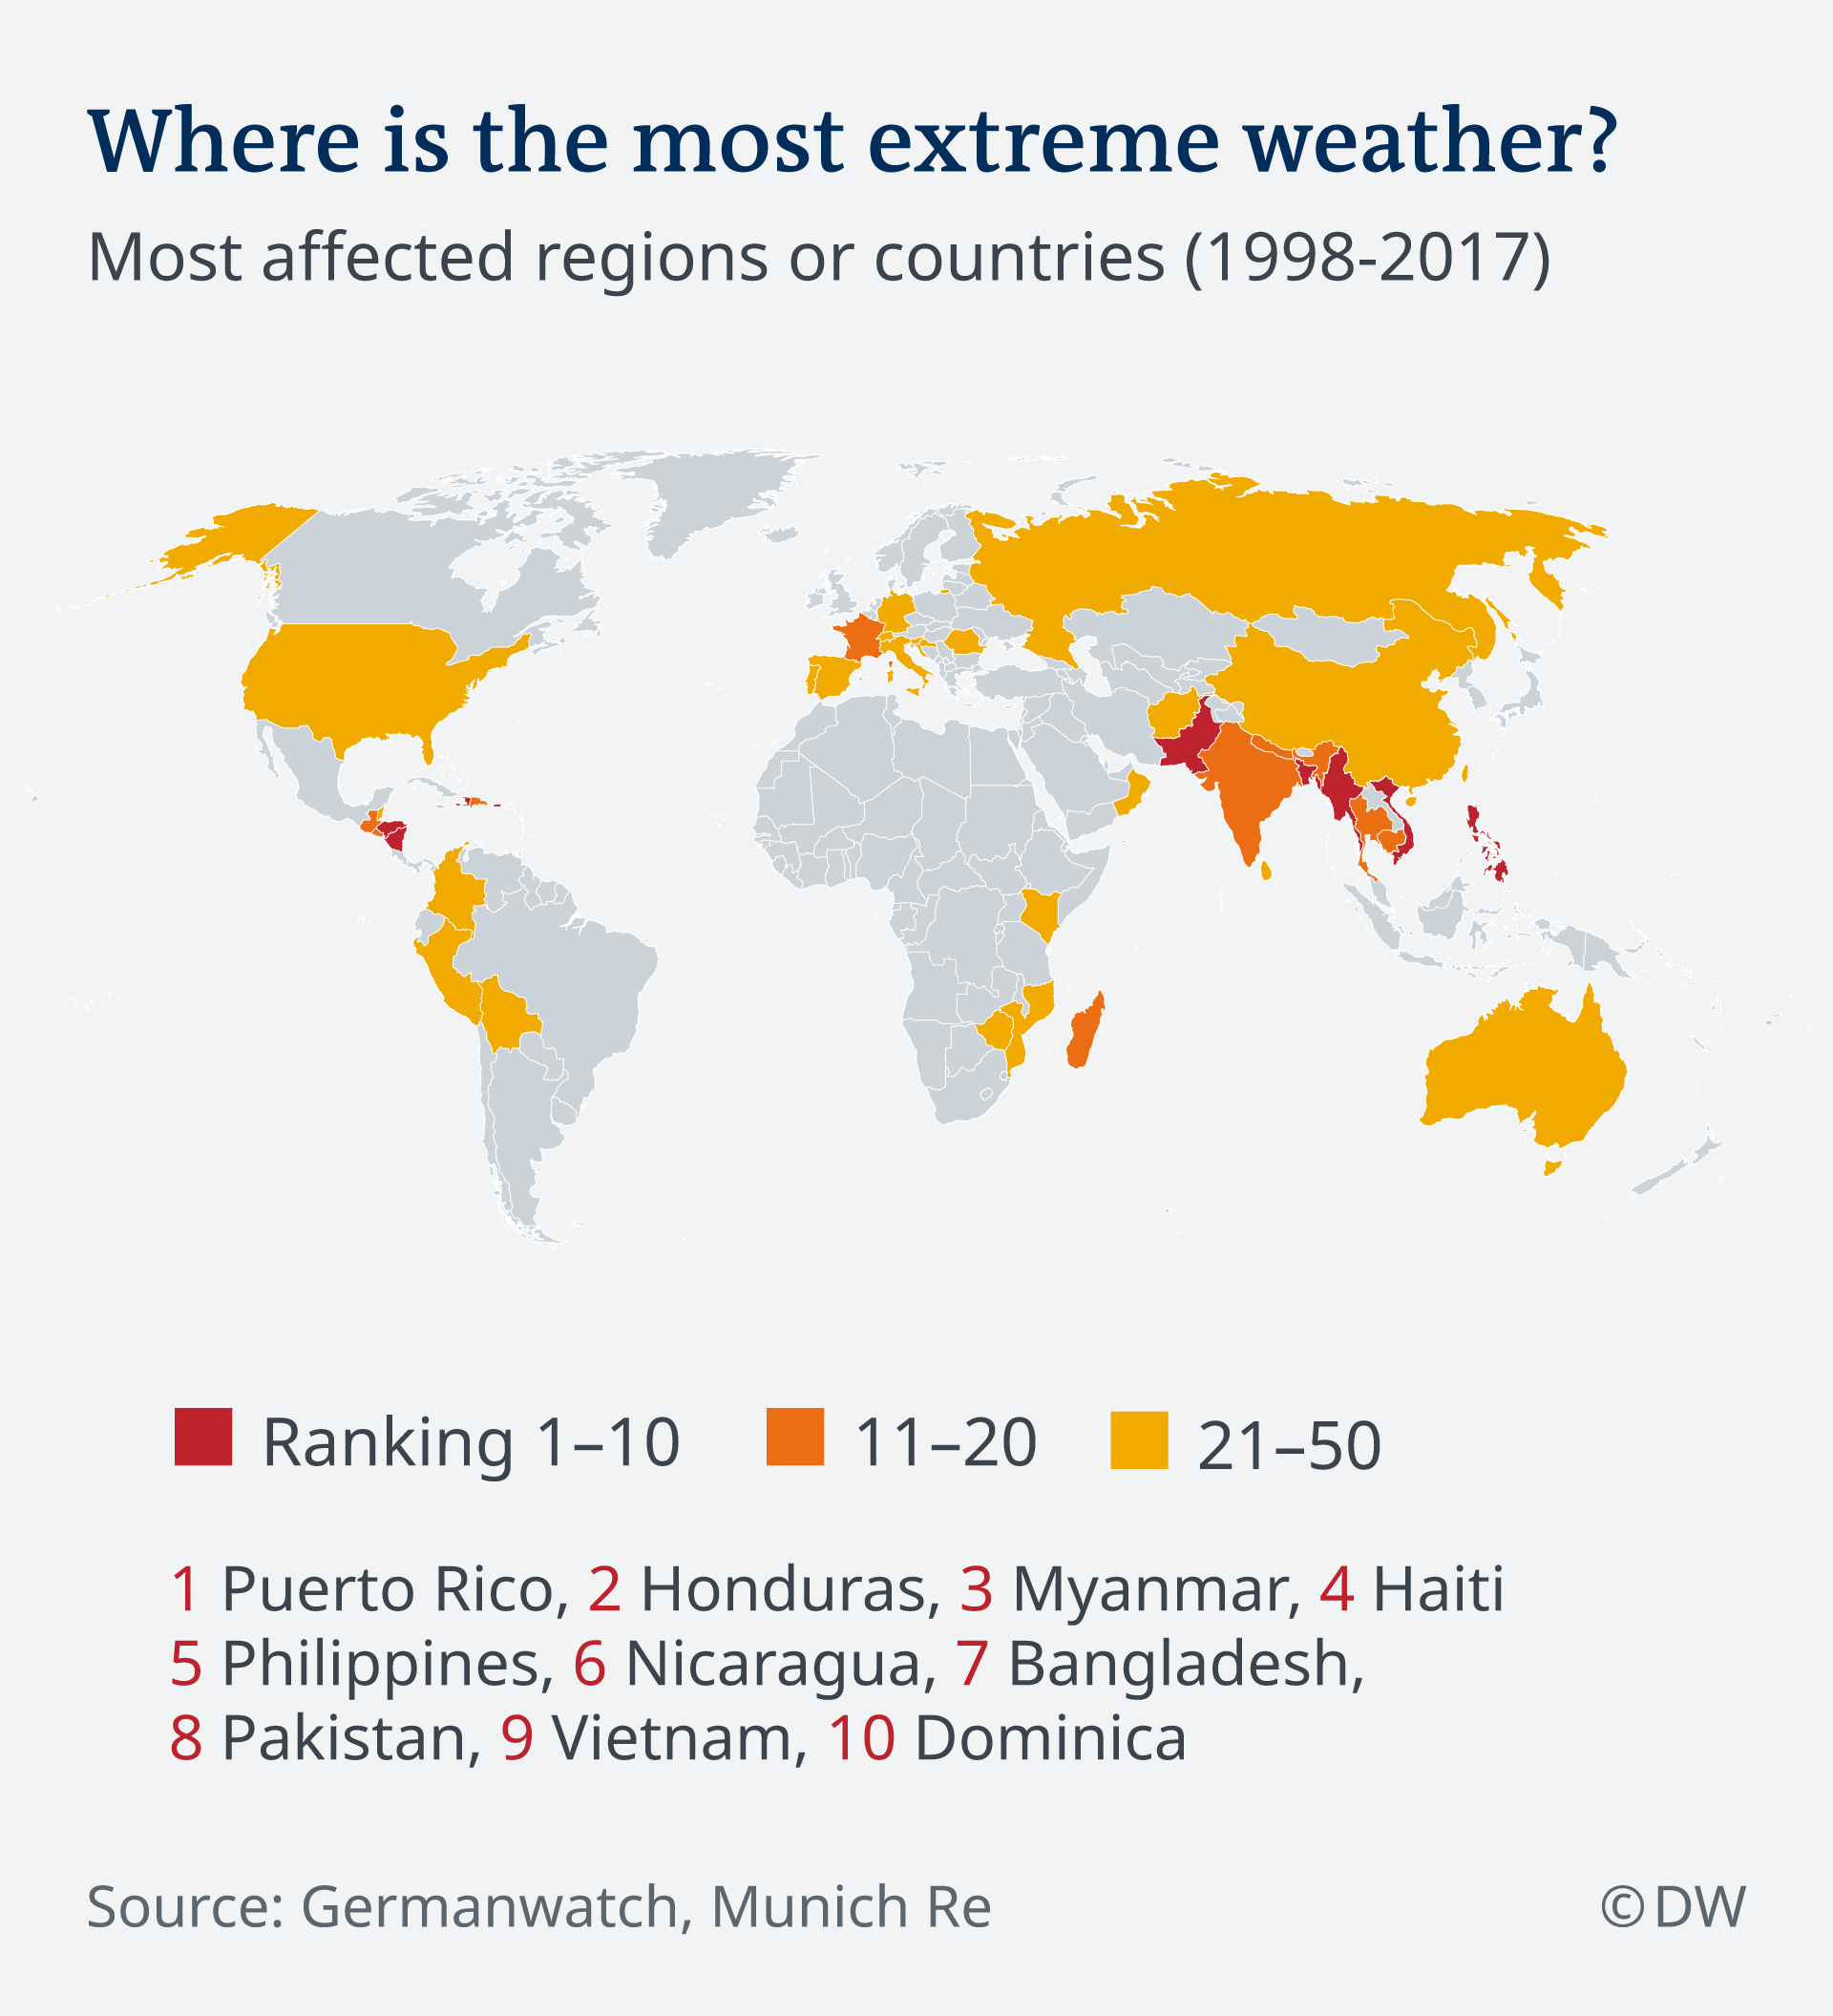 Where is the most extreme weather?